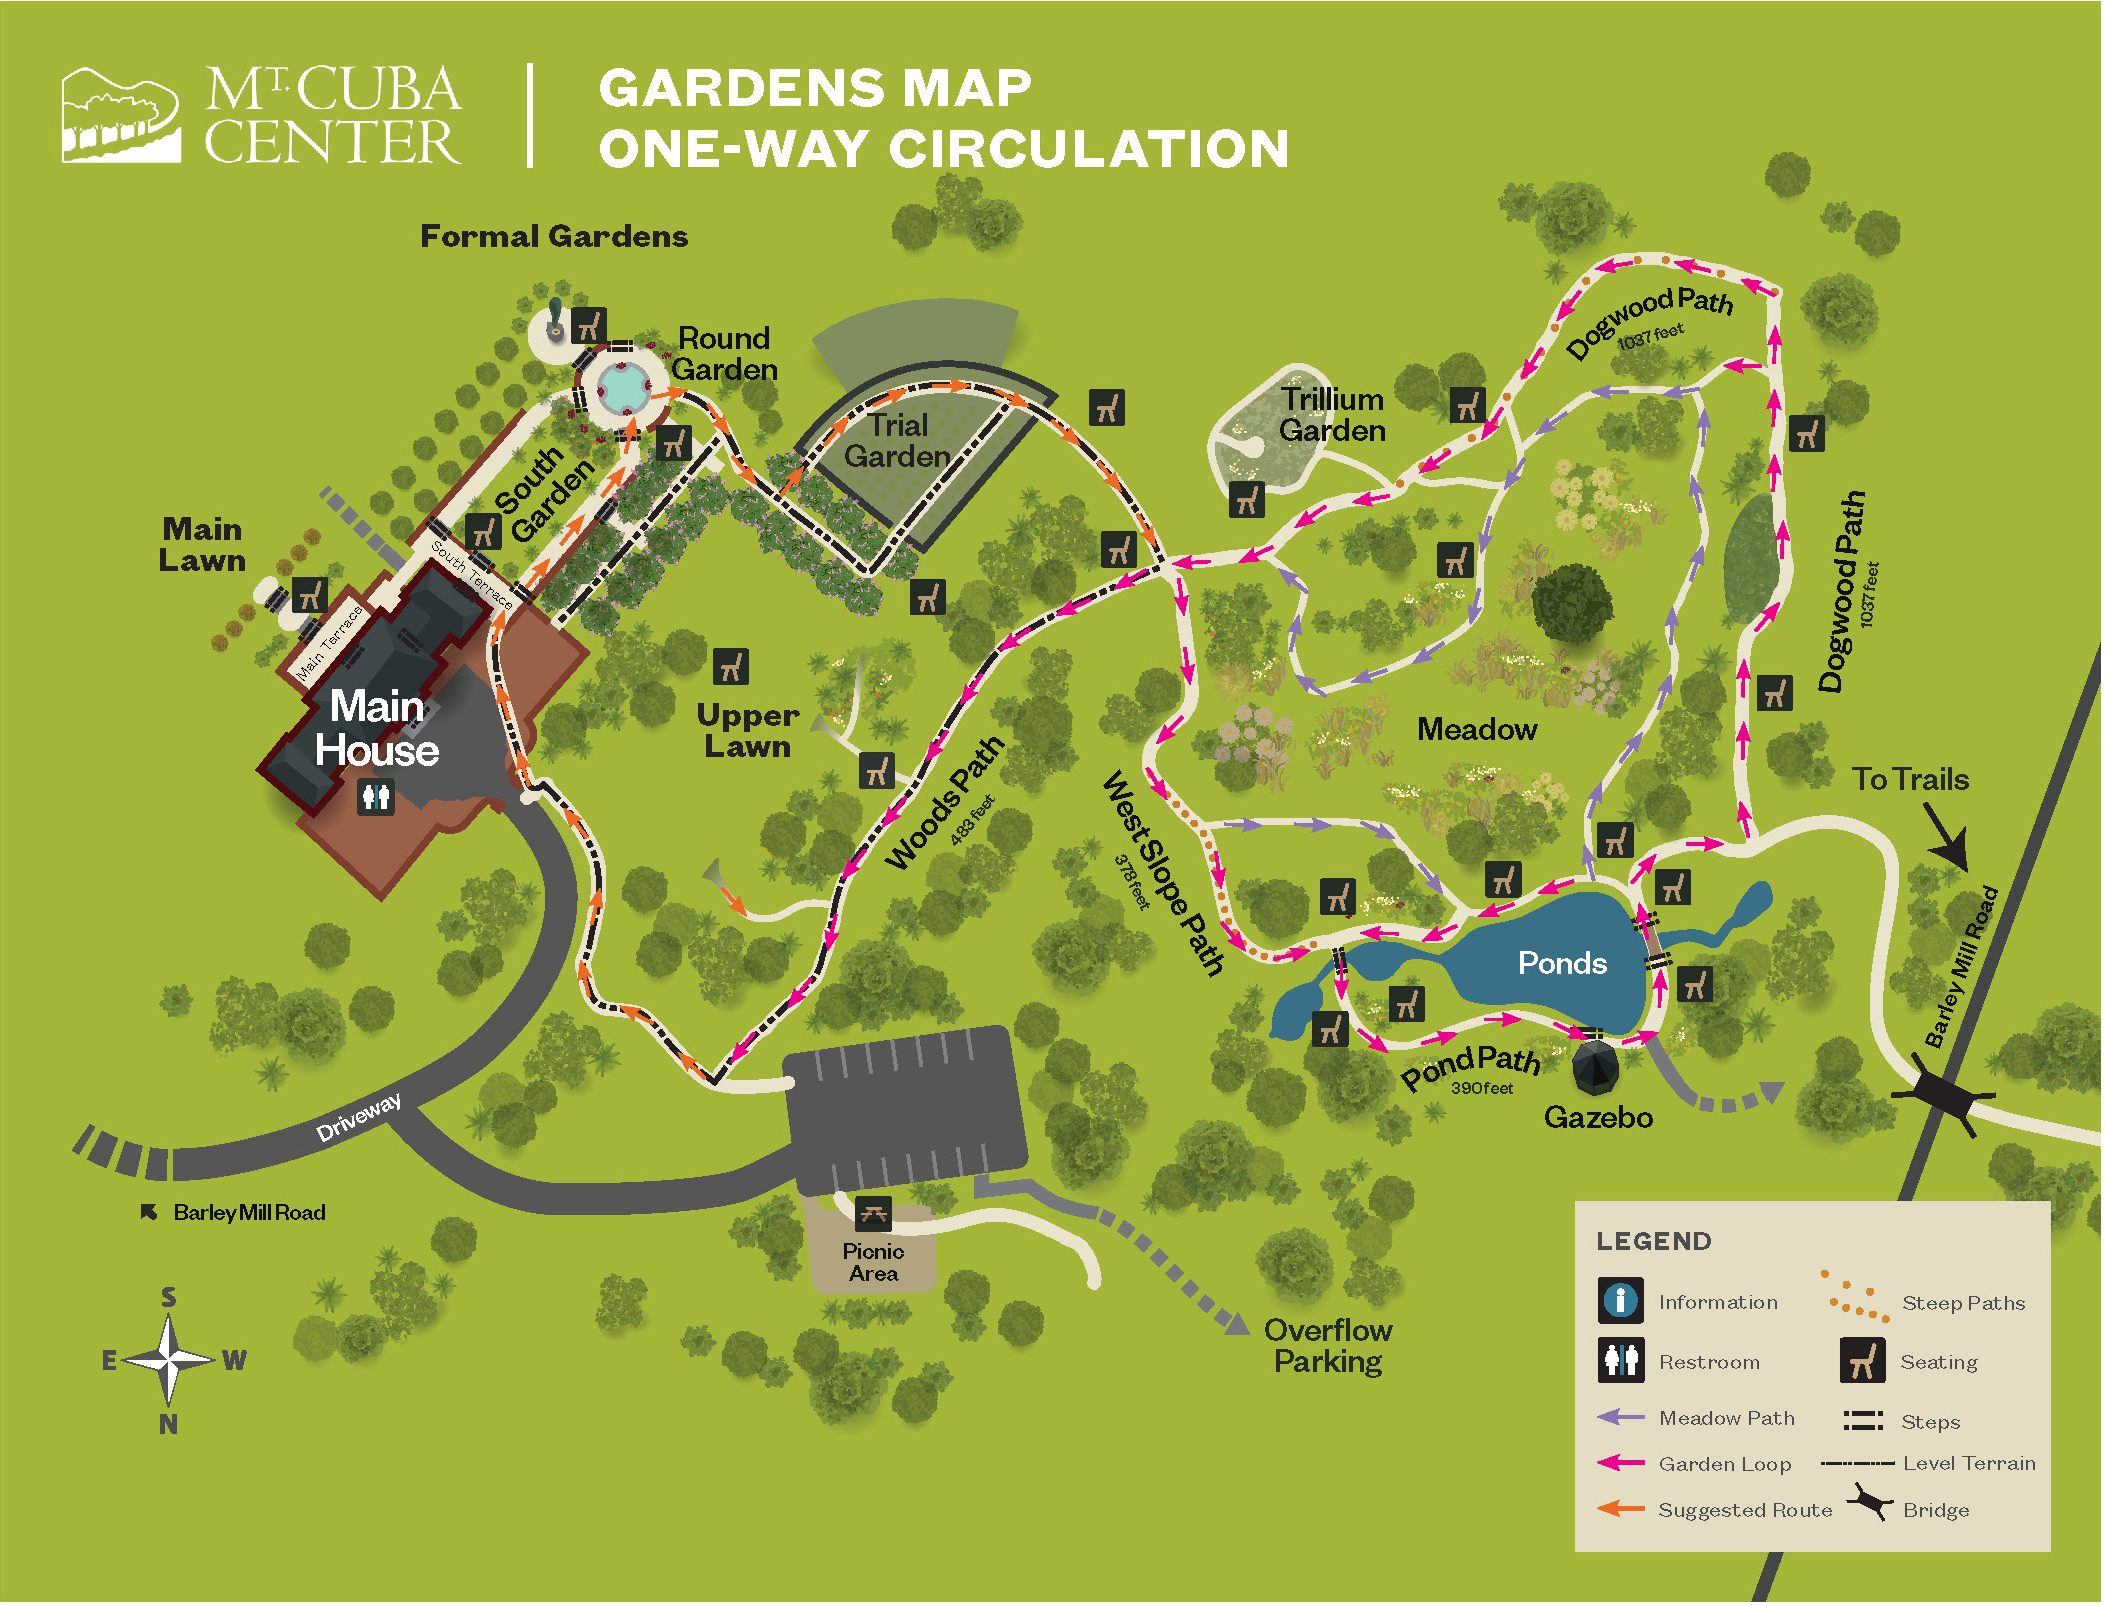 Mt. Cuba Center one-way circulation map of Gardens and Trails.